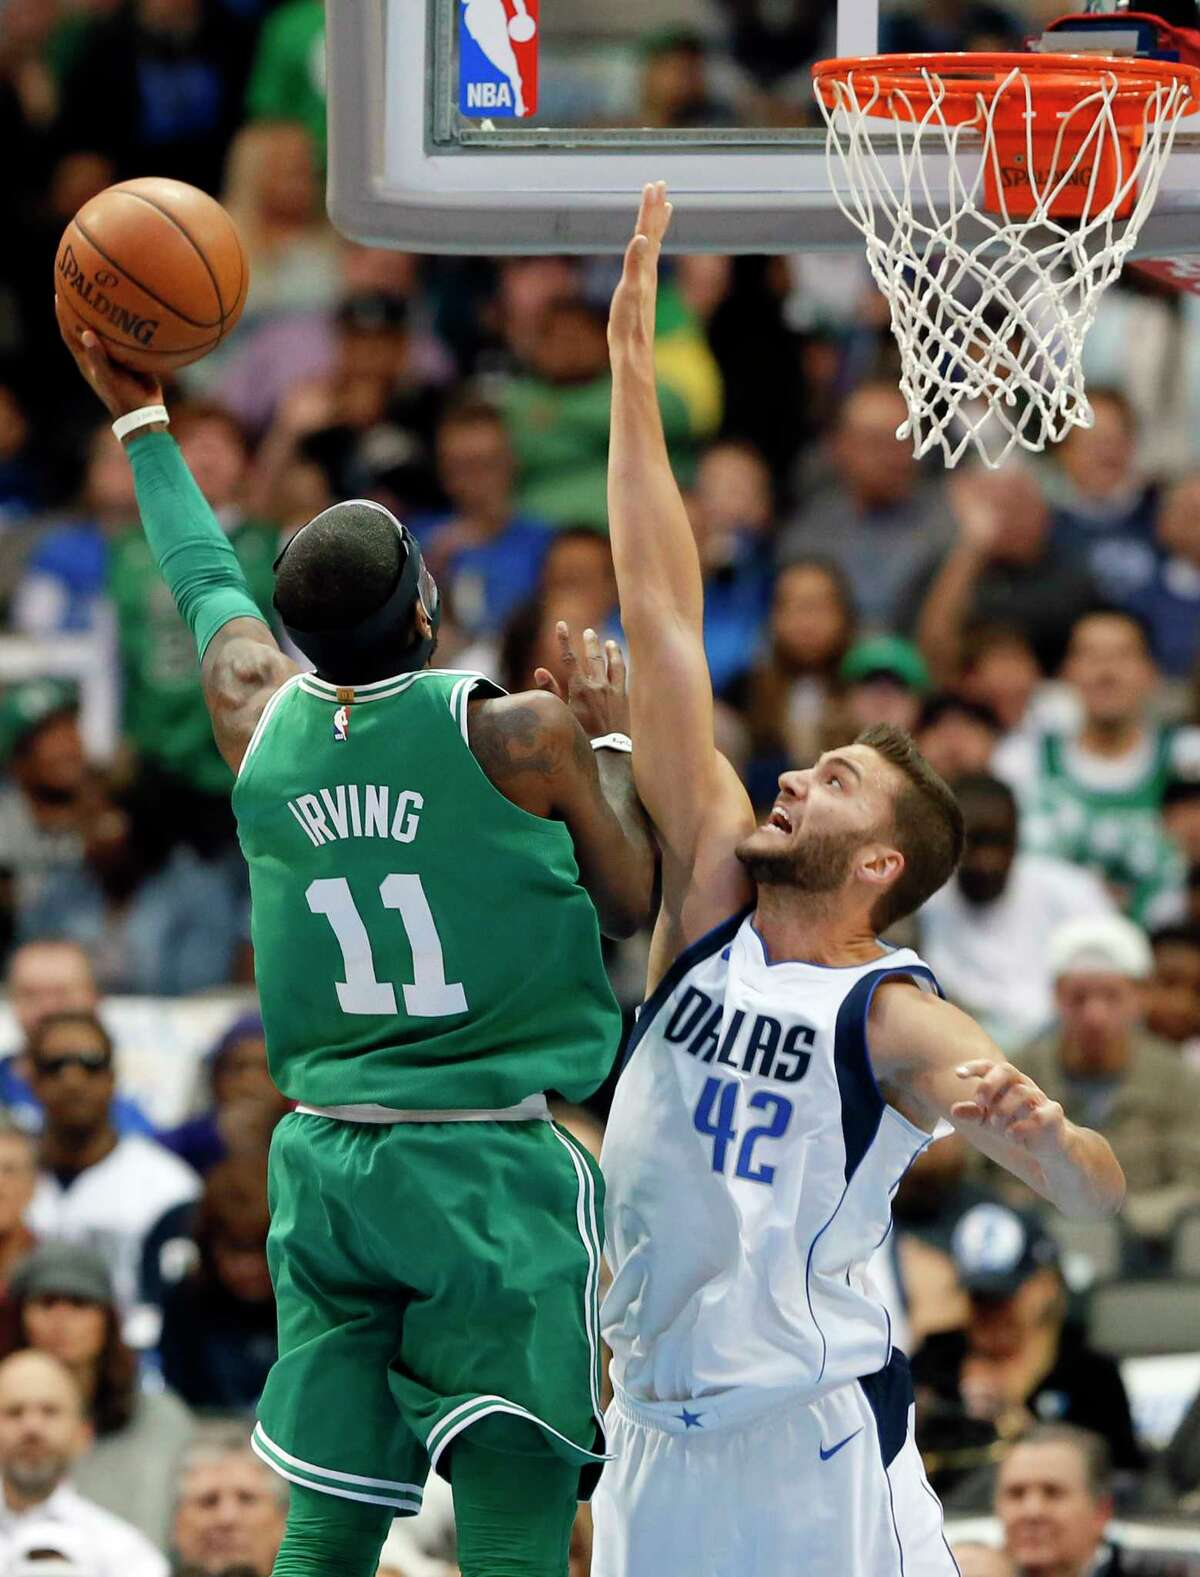 Boston Celtics' Kyrie Irving (11) goes up to shoot over Dallas Mavericks' Maximilian Kleber (42), of Germany, in the first half of an NBA basketball game, Monday, Nov. 20, 2017, in Dallas. (AP Photo/Tony Gutierrez) ORG XMIT: DNA107